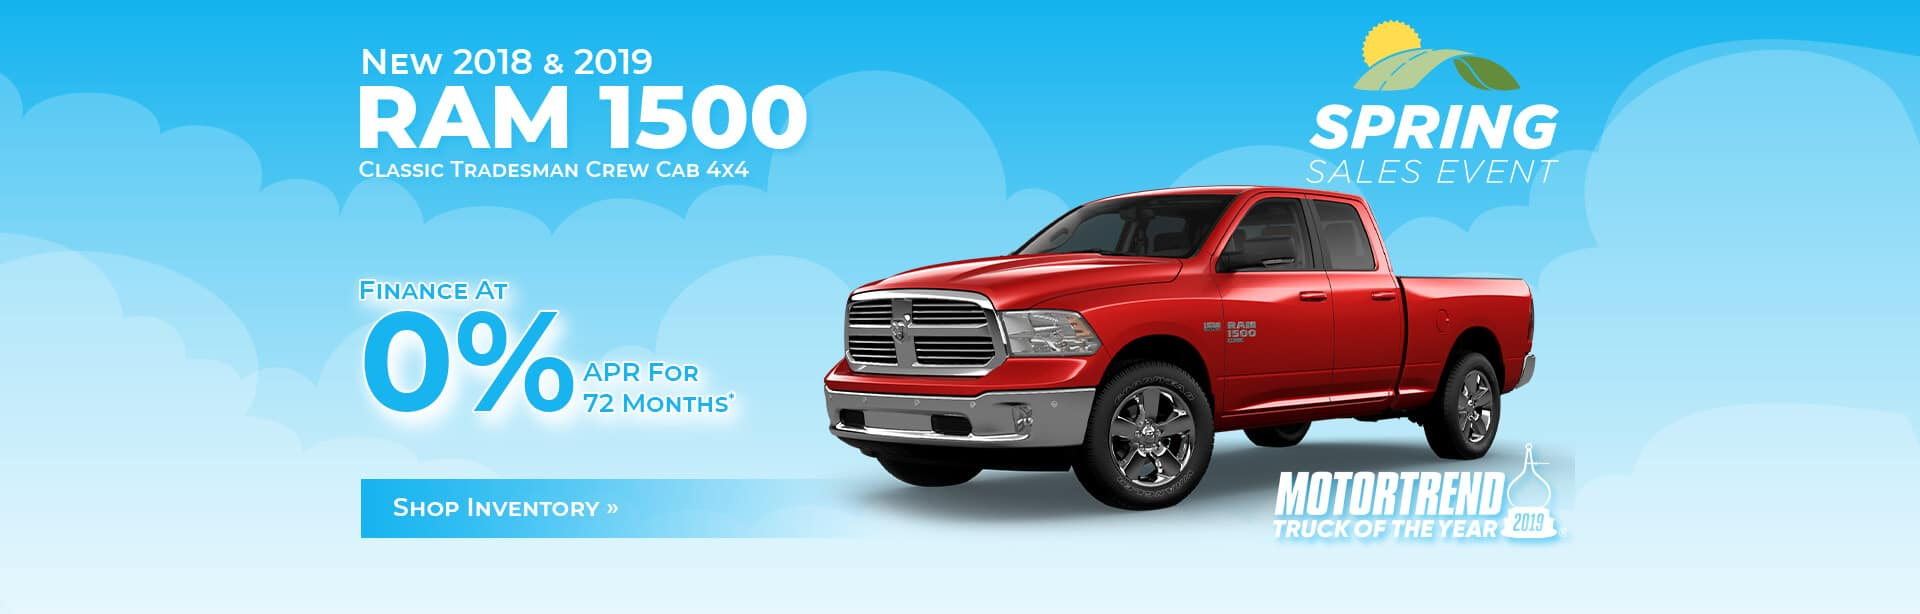 Finance a New RAM 1500 Classic at 0% APR for 72 months.